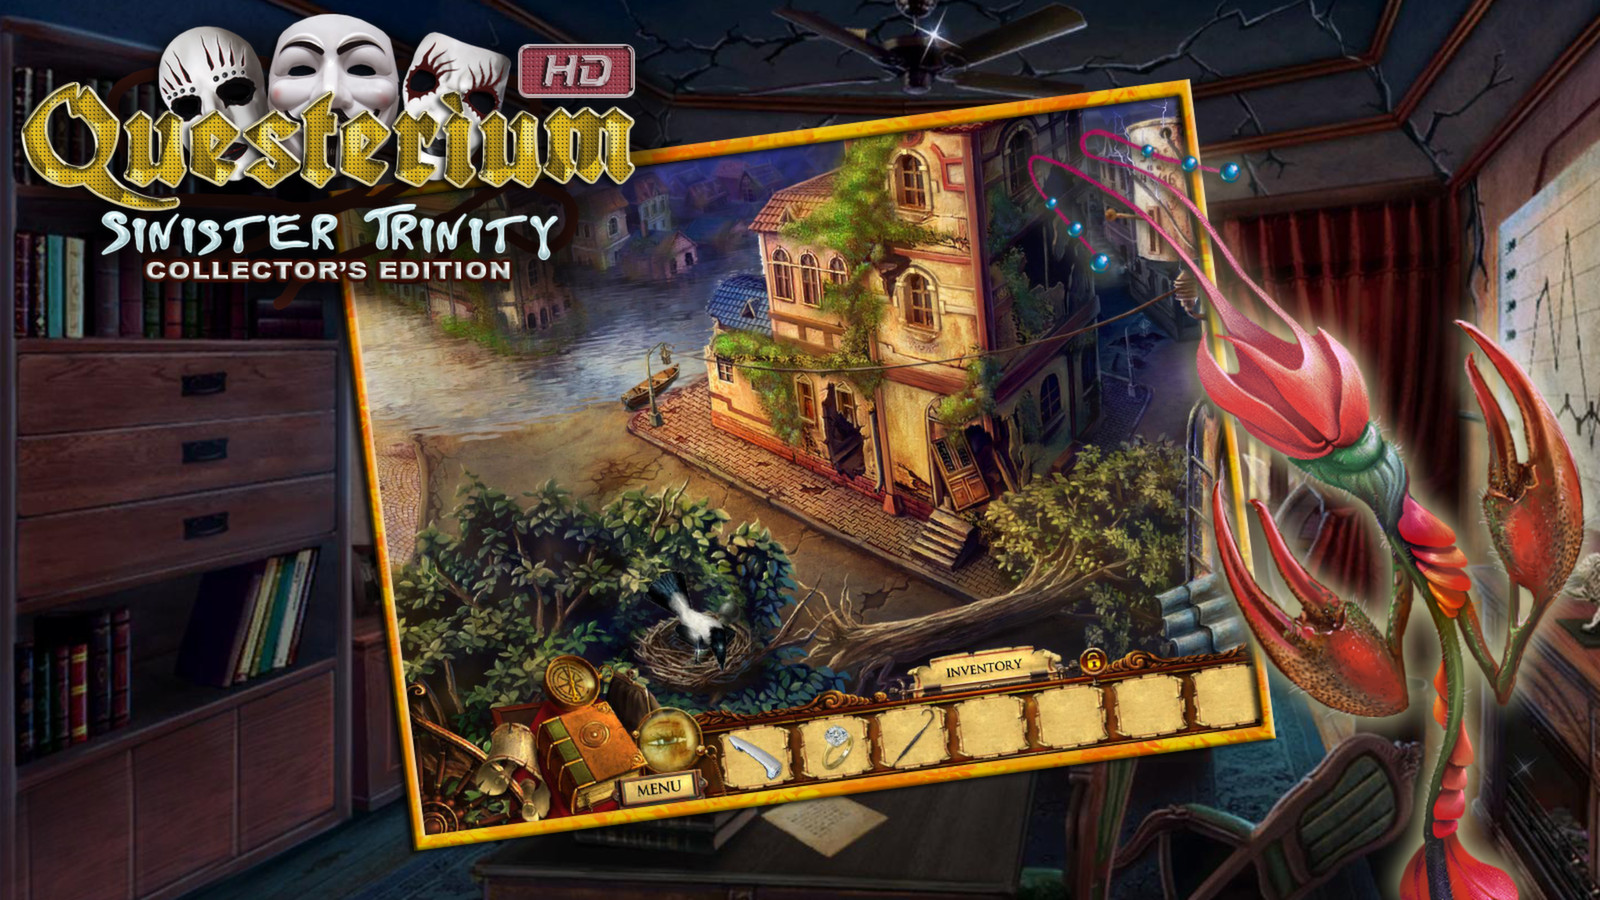 Questerium: Sinister Trinity HD Collector's Edition screenshot